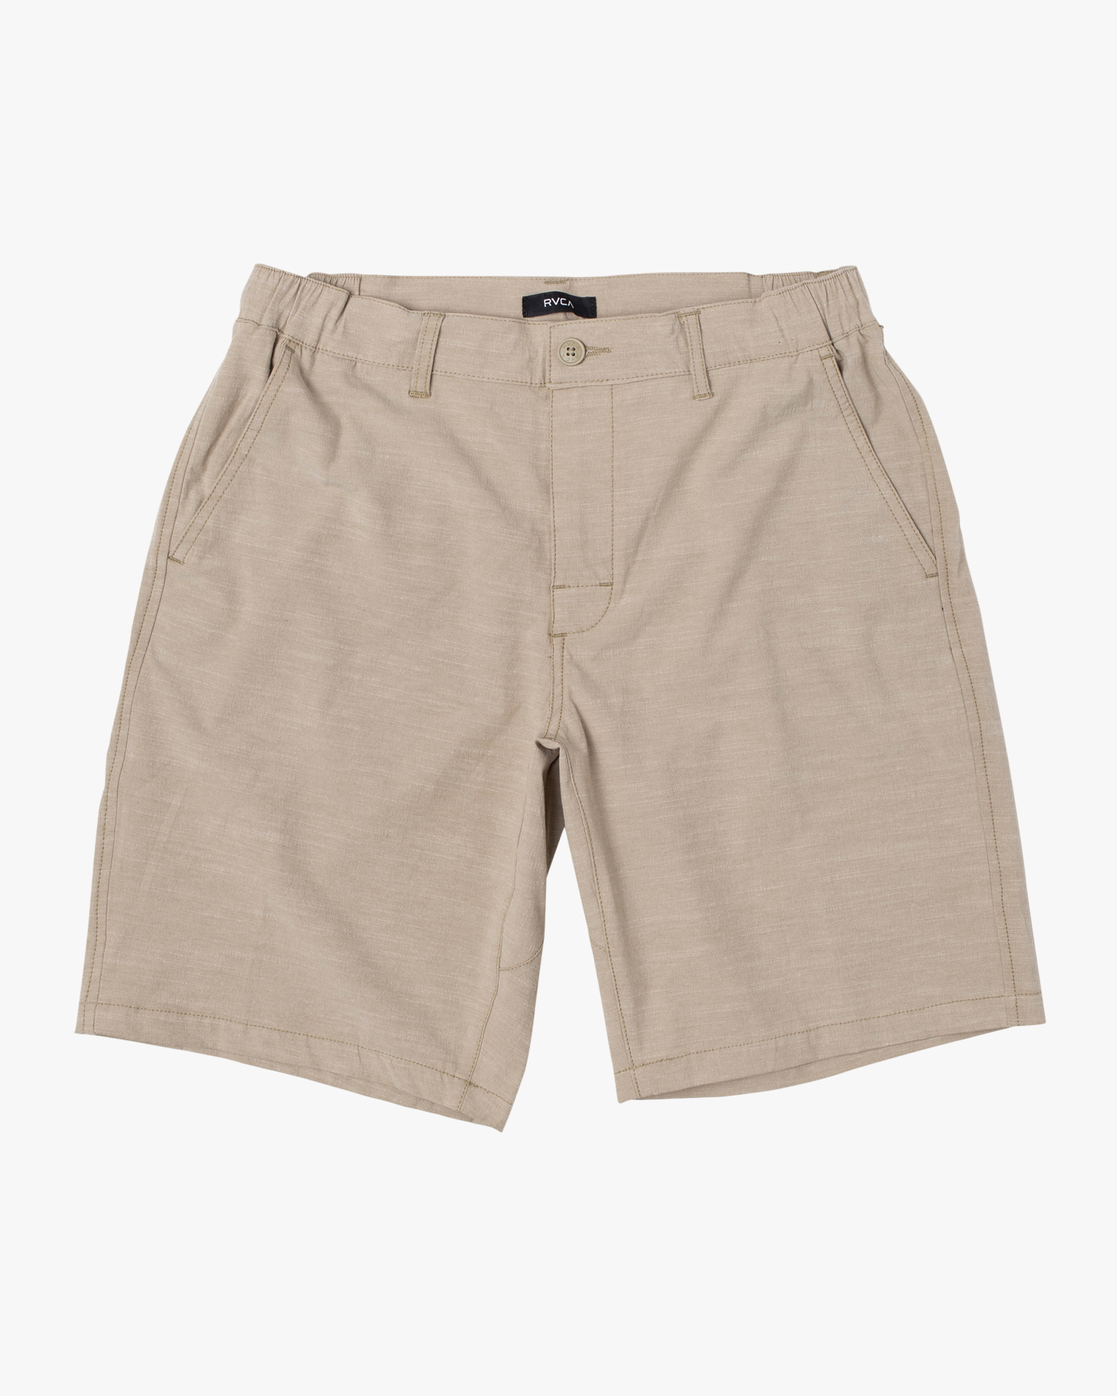 "0 BOYS ALL TIME COASTAL SOLID HYBRID SHORT 17"" Beige B206QRCO RVCA"